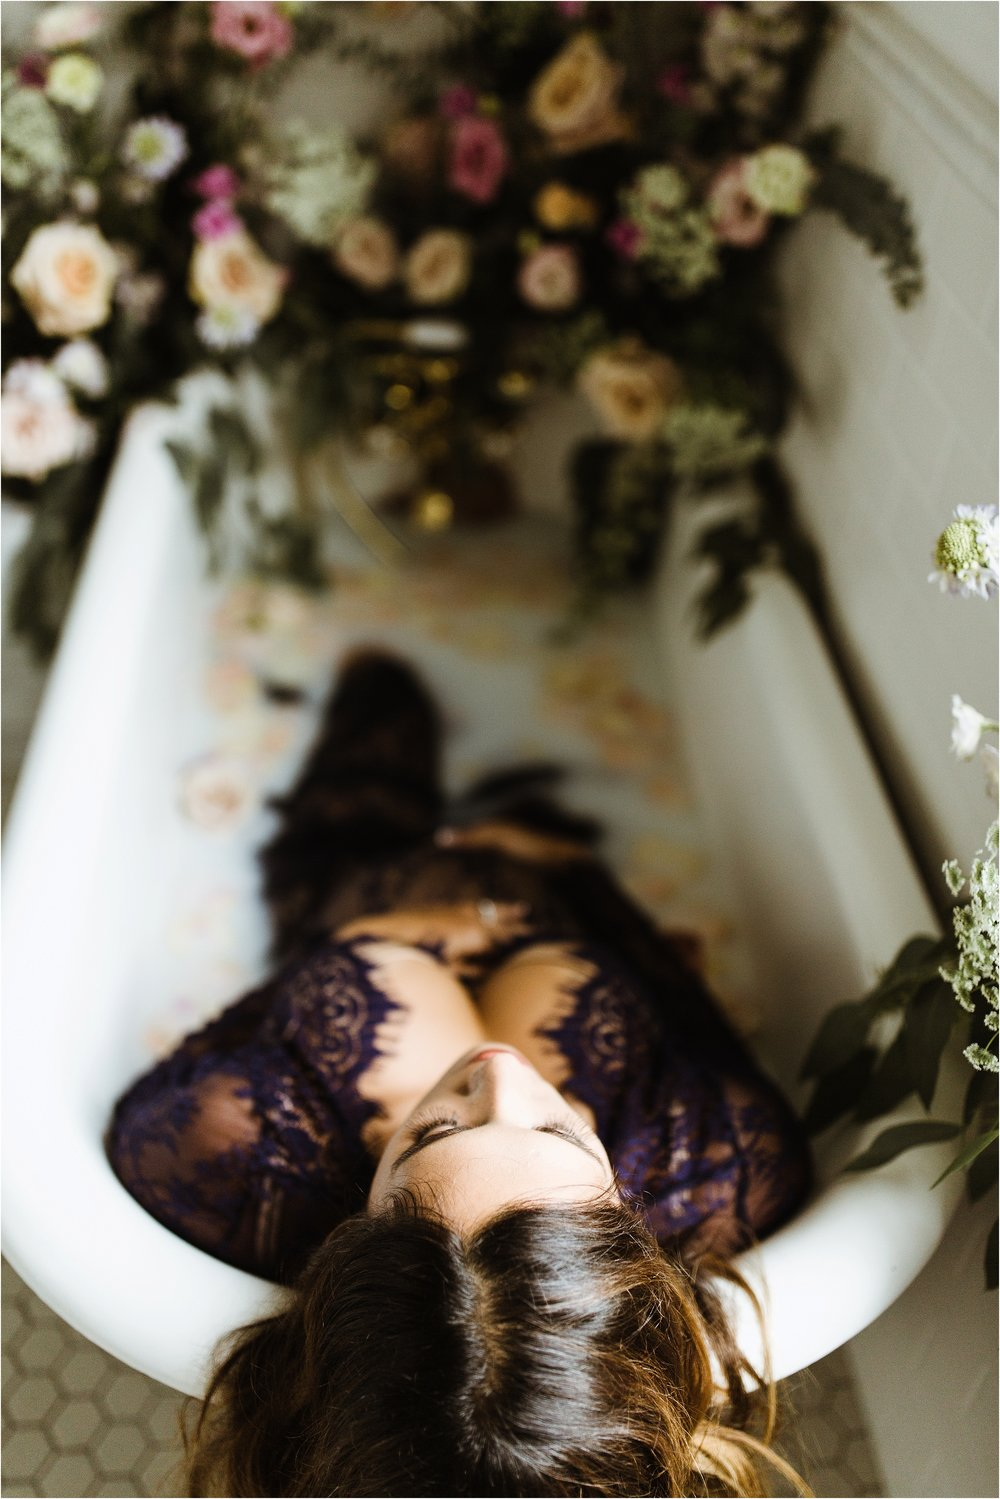 Quaint-and-Whim-Louisiana-Milk-Bath-Photography-Maternity-016.JPG